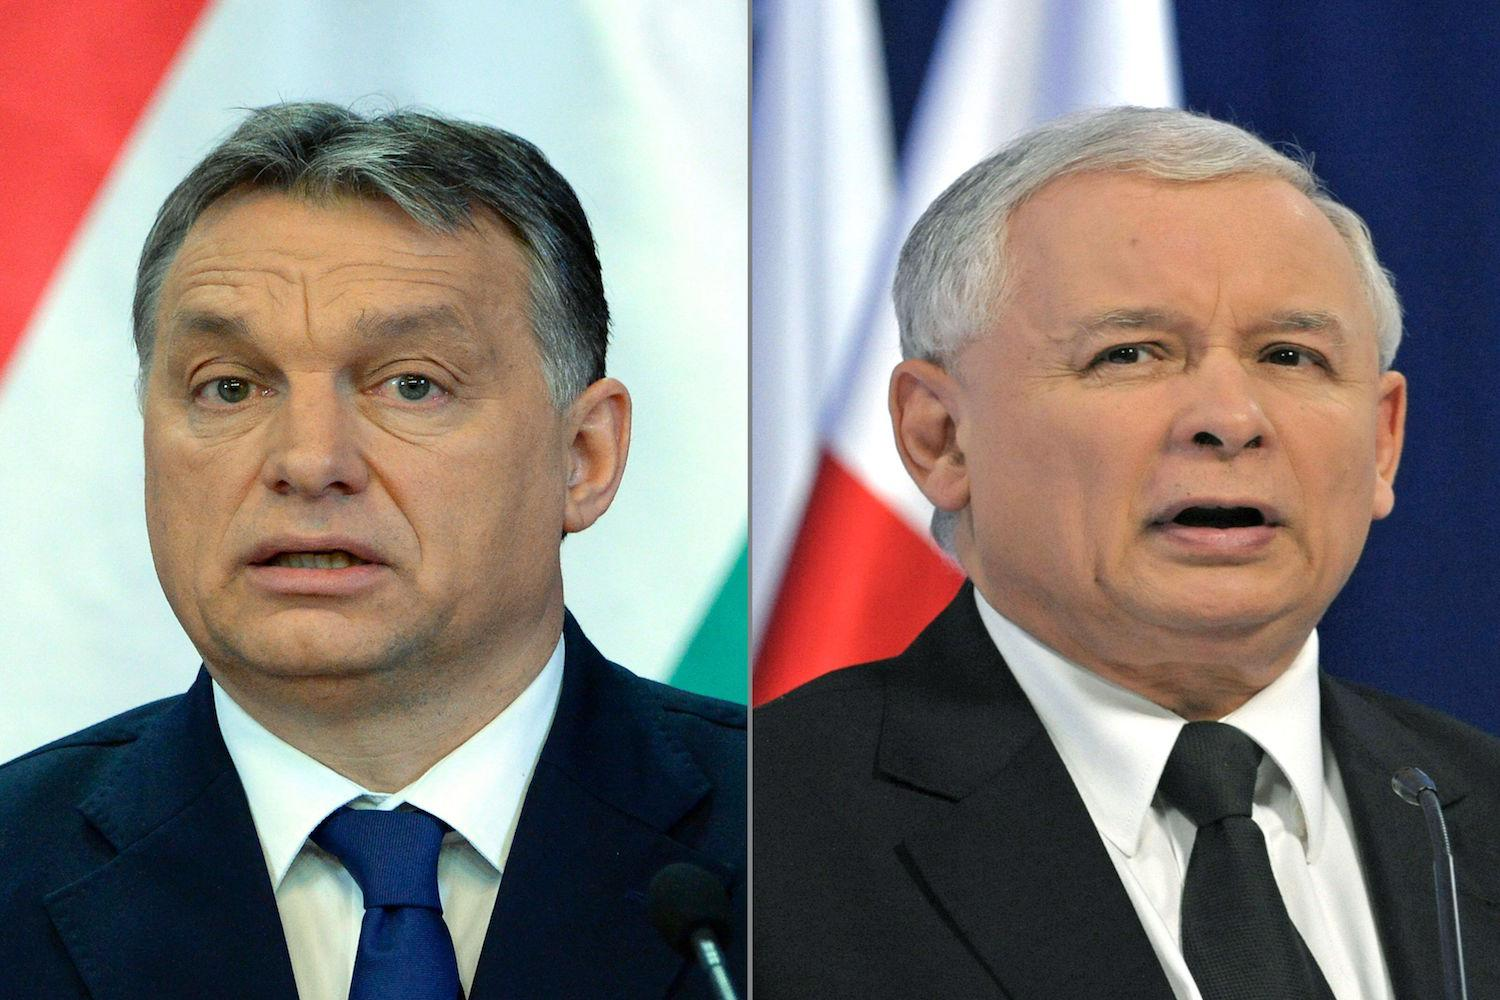 If the EU really wants to punish Poland, it should turn up the pressure on Hungary.